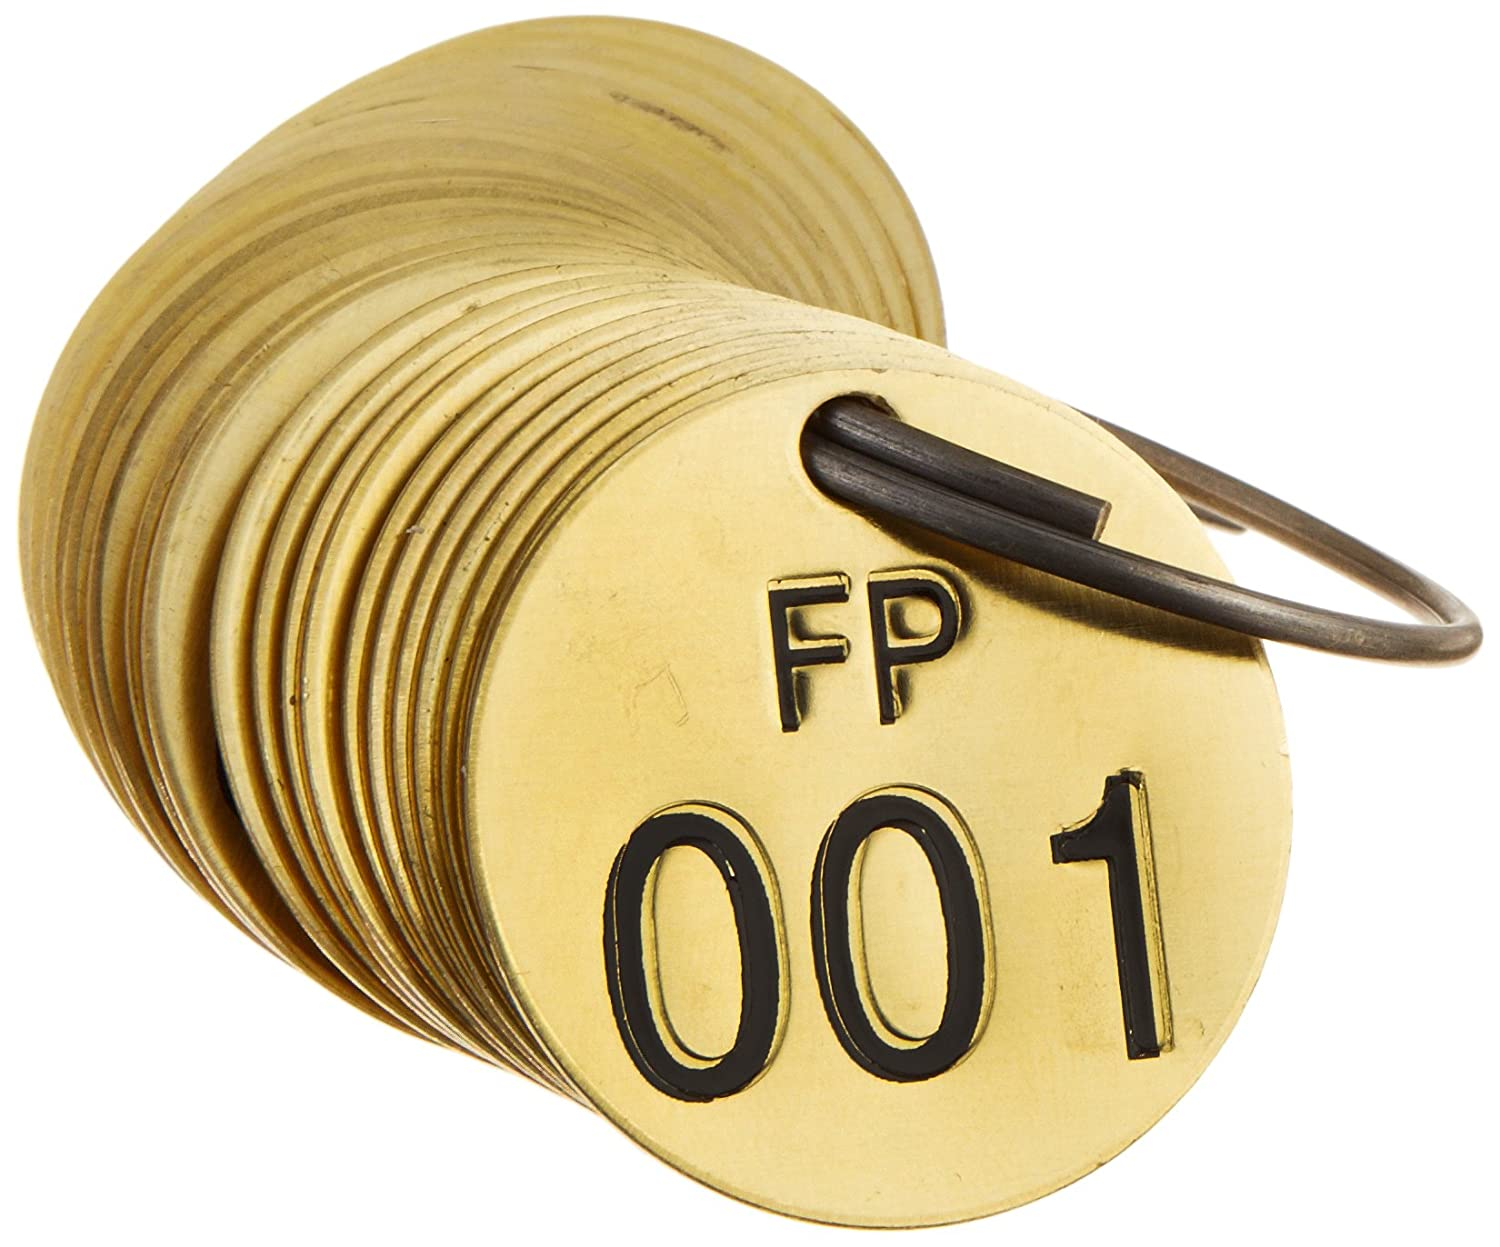 LegendFP Numbers 001-025 Brady 236671 1//2 Diameter Stamped Brass Valve Tags LegendFP 25 per Package 25 per Package